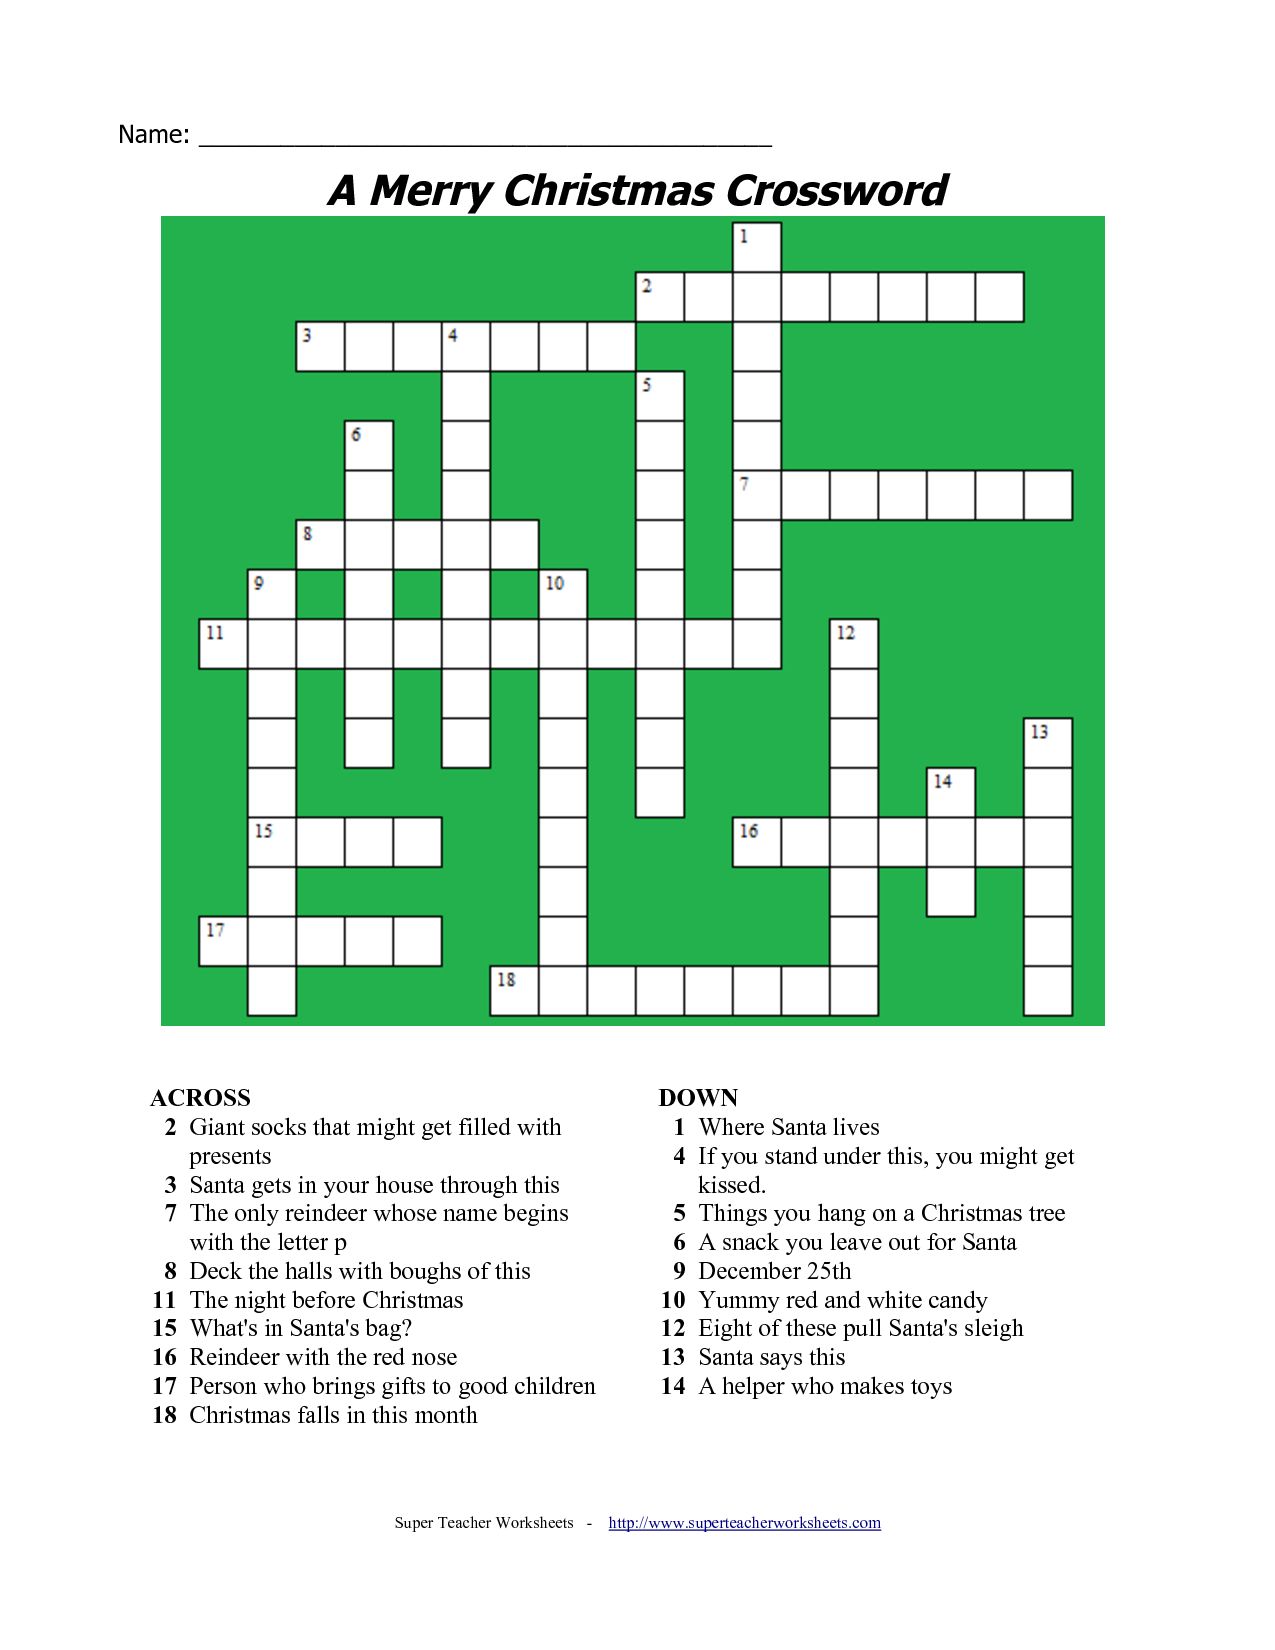 20 Fun Printable Christmas Crossword Puzzles | Kittybabylove - Printable Holiday Crossword Puzzles For Adults With Answers